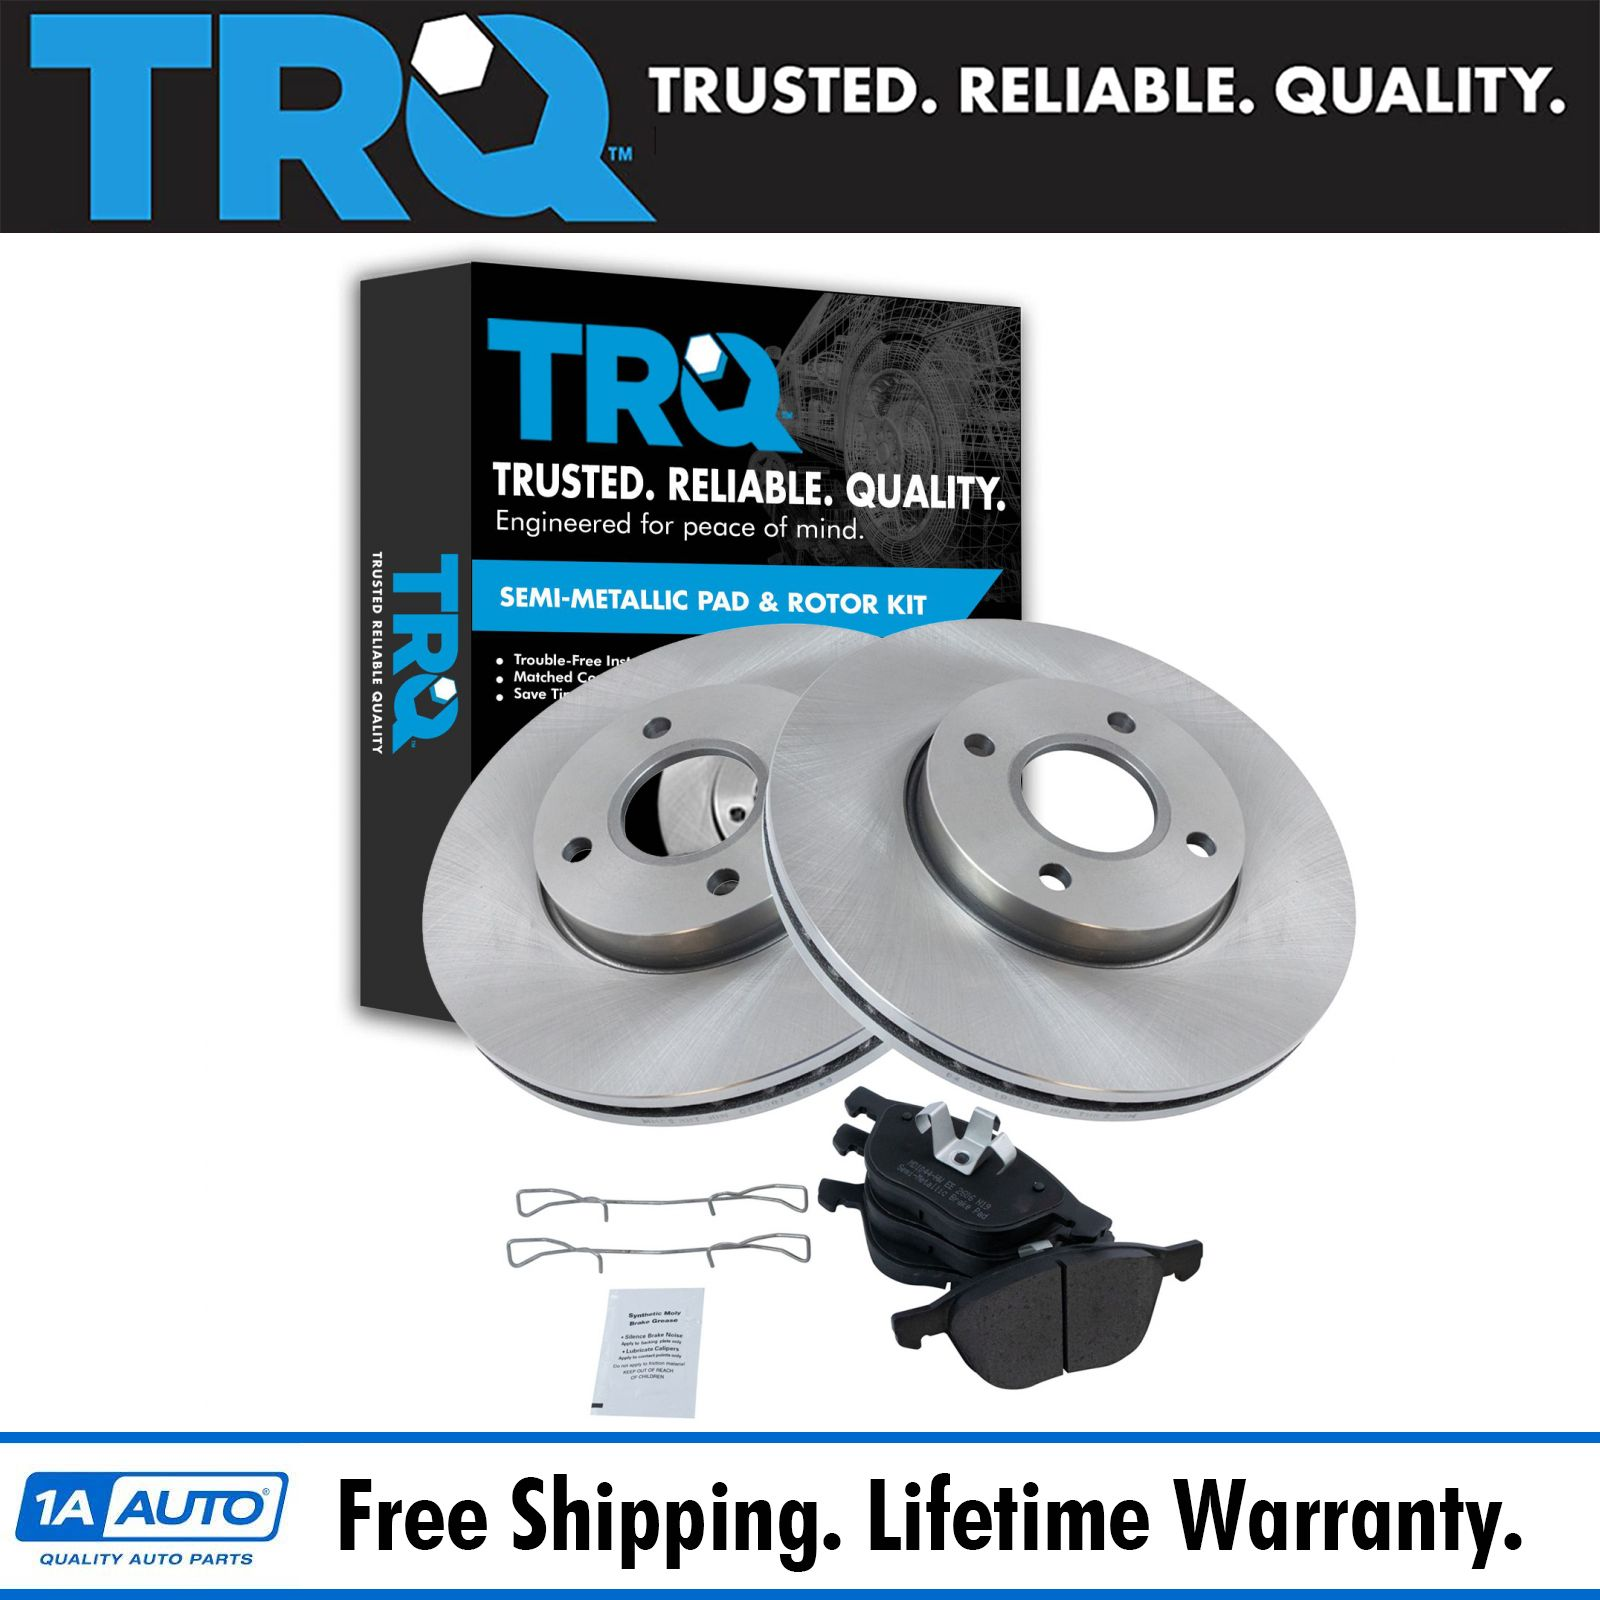 Front Coated Disc Rotors /& Semi-Metallic Brake Pads Fits Ford Focus